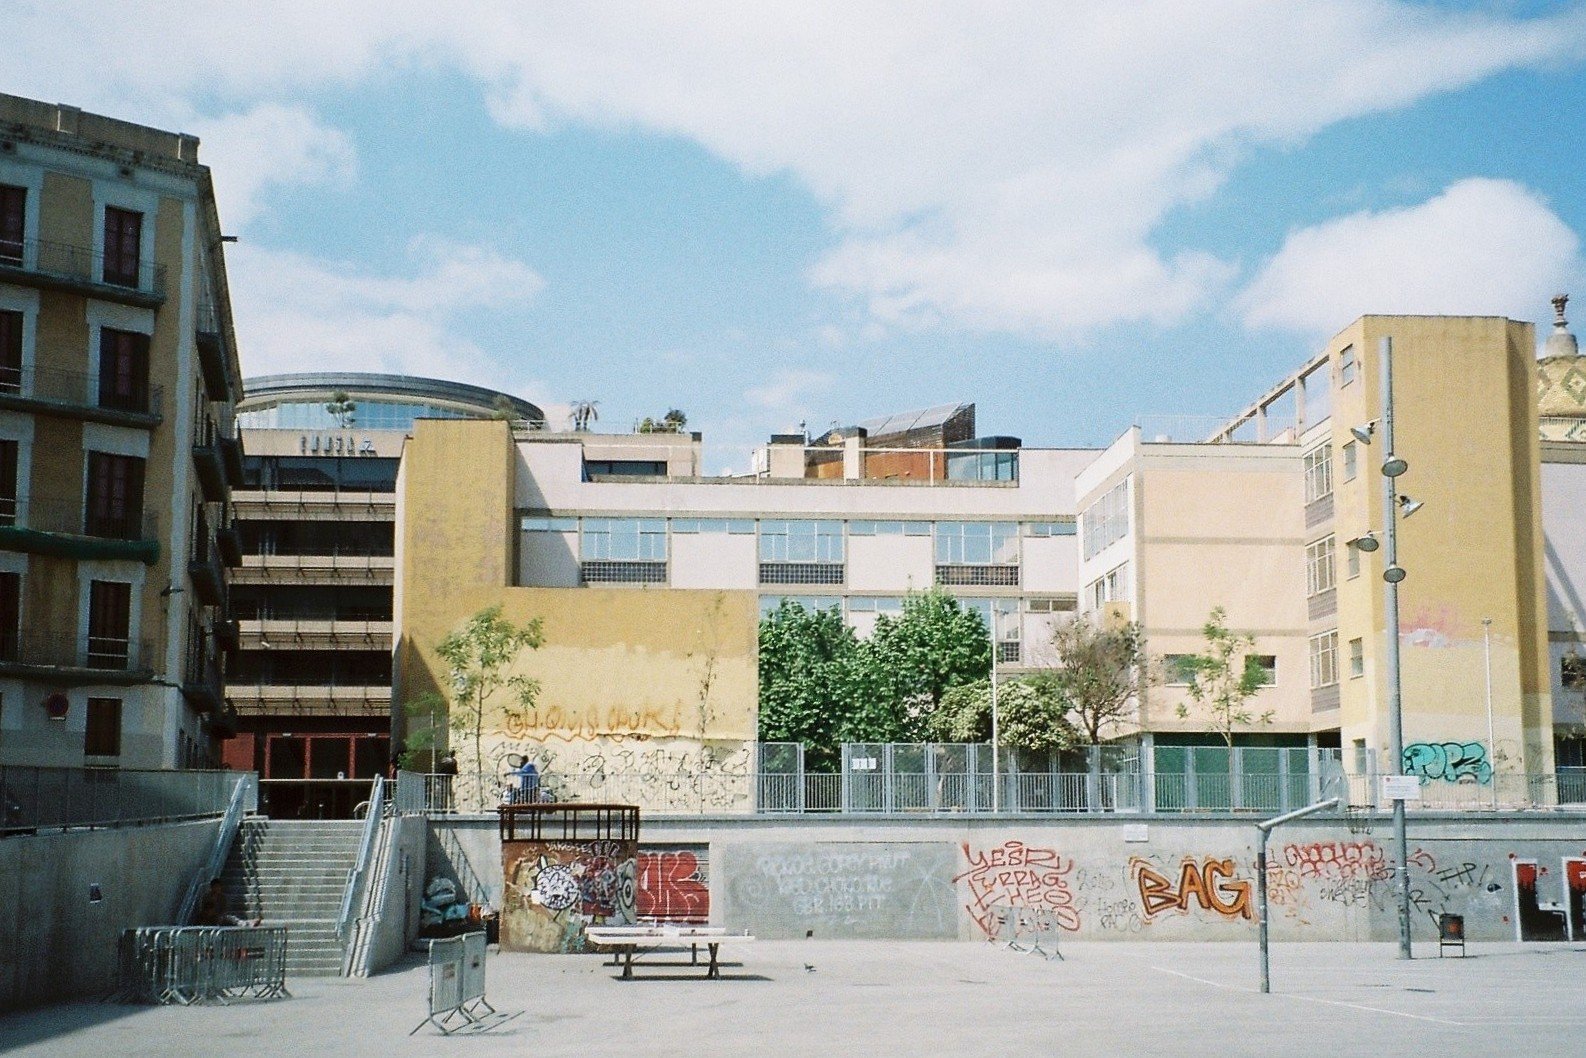 15 Barcelona Film Photos Looking Up To The Rooftops Gkm